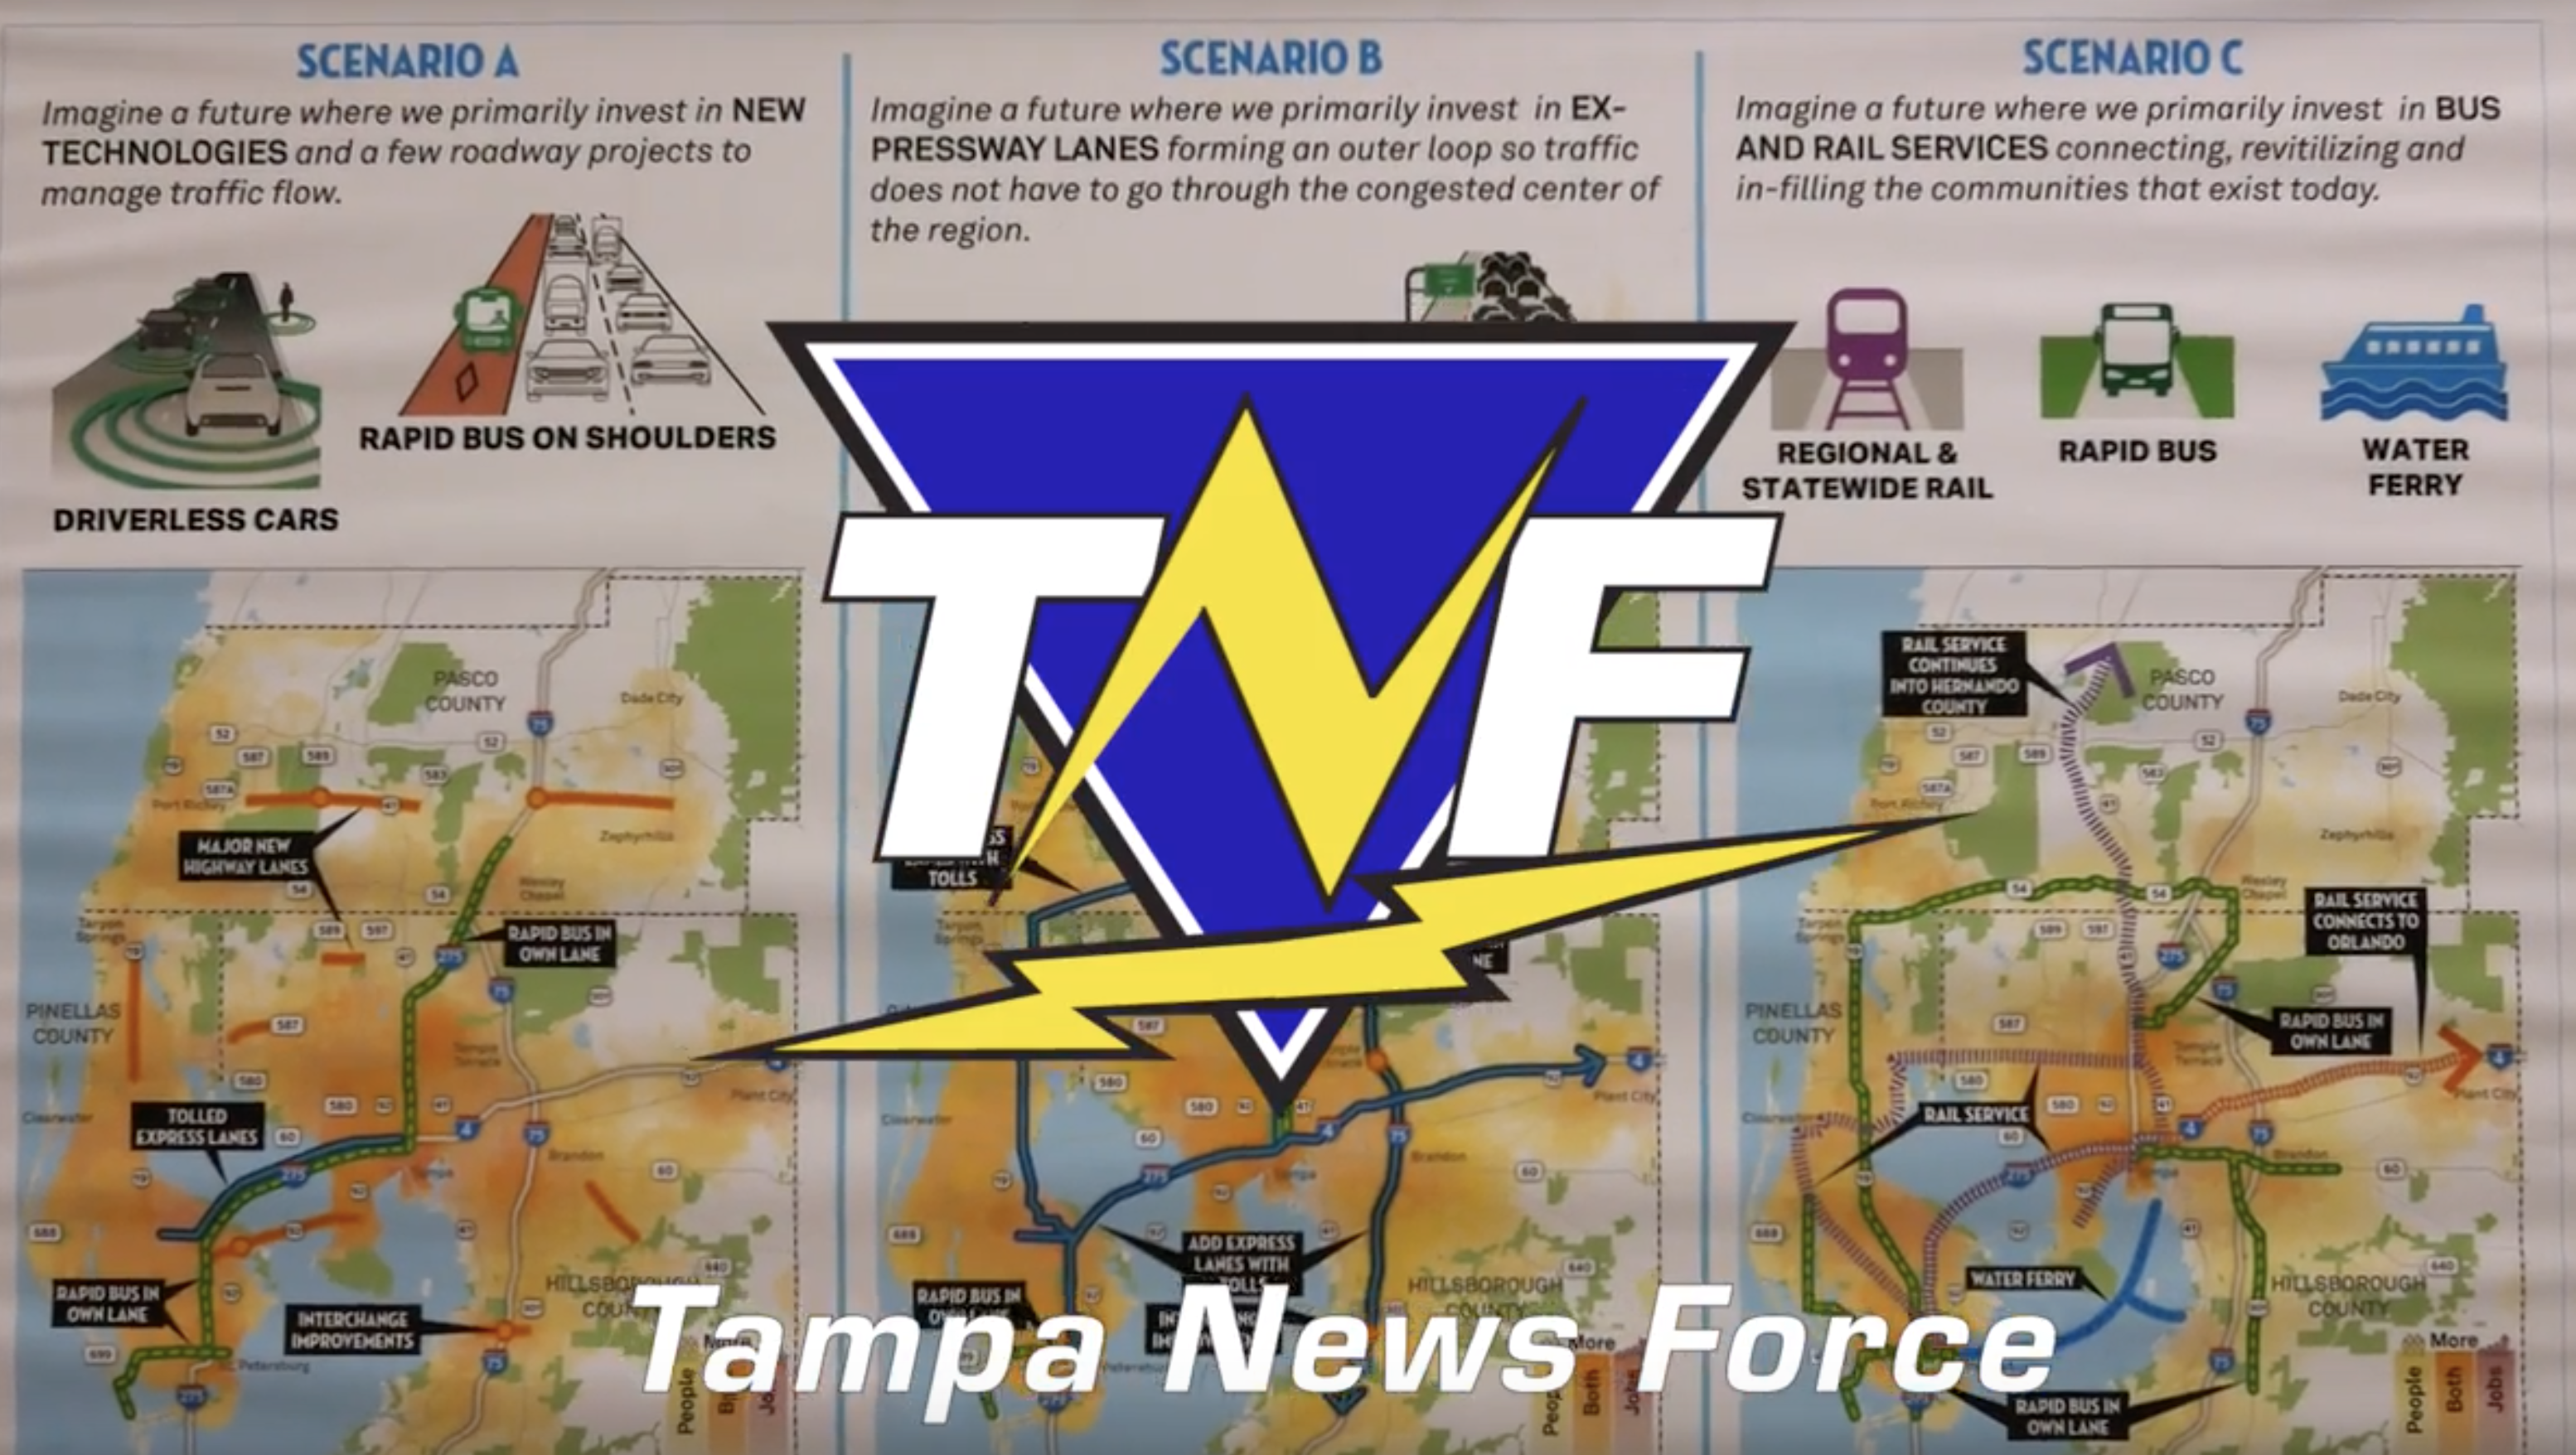 Tampa News Force - FDOT Community Breakdown